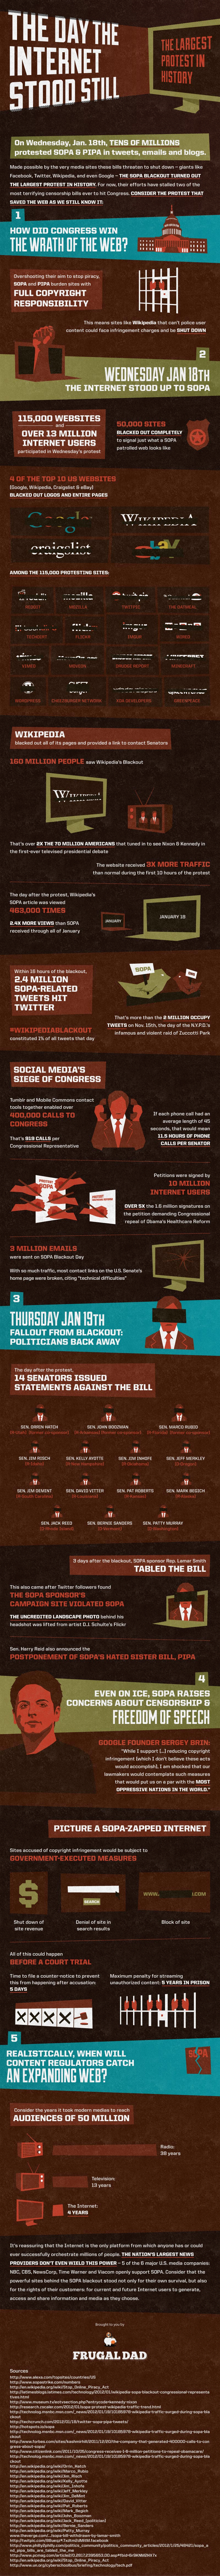 SOPA and Internet Protest